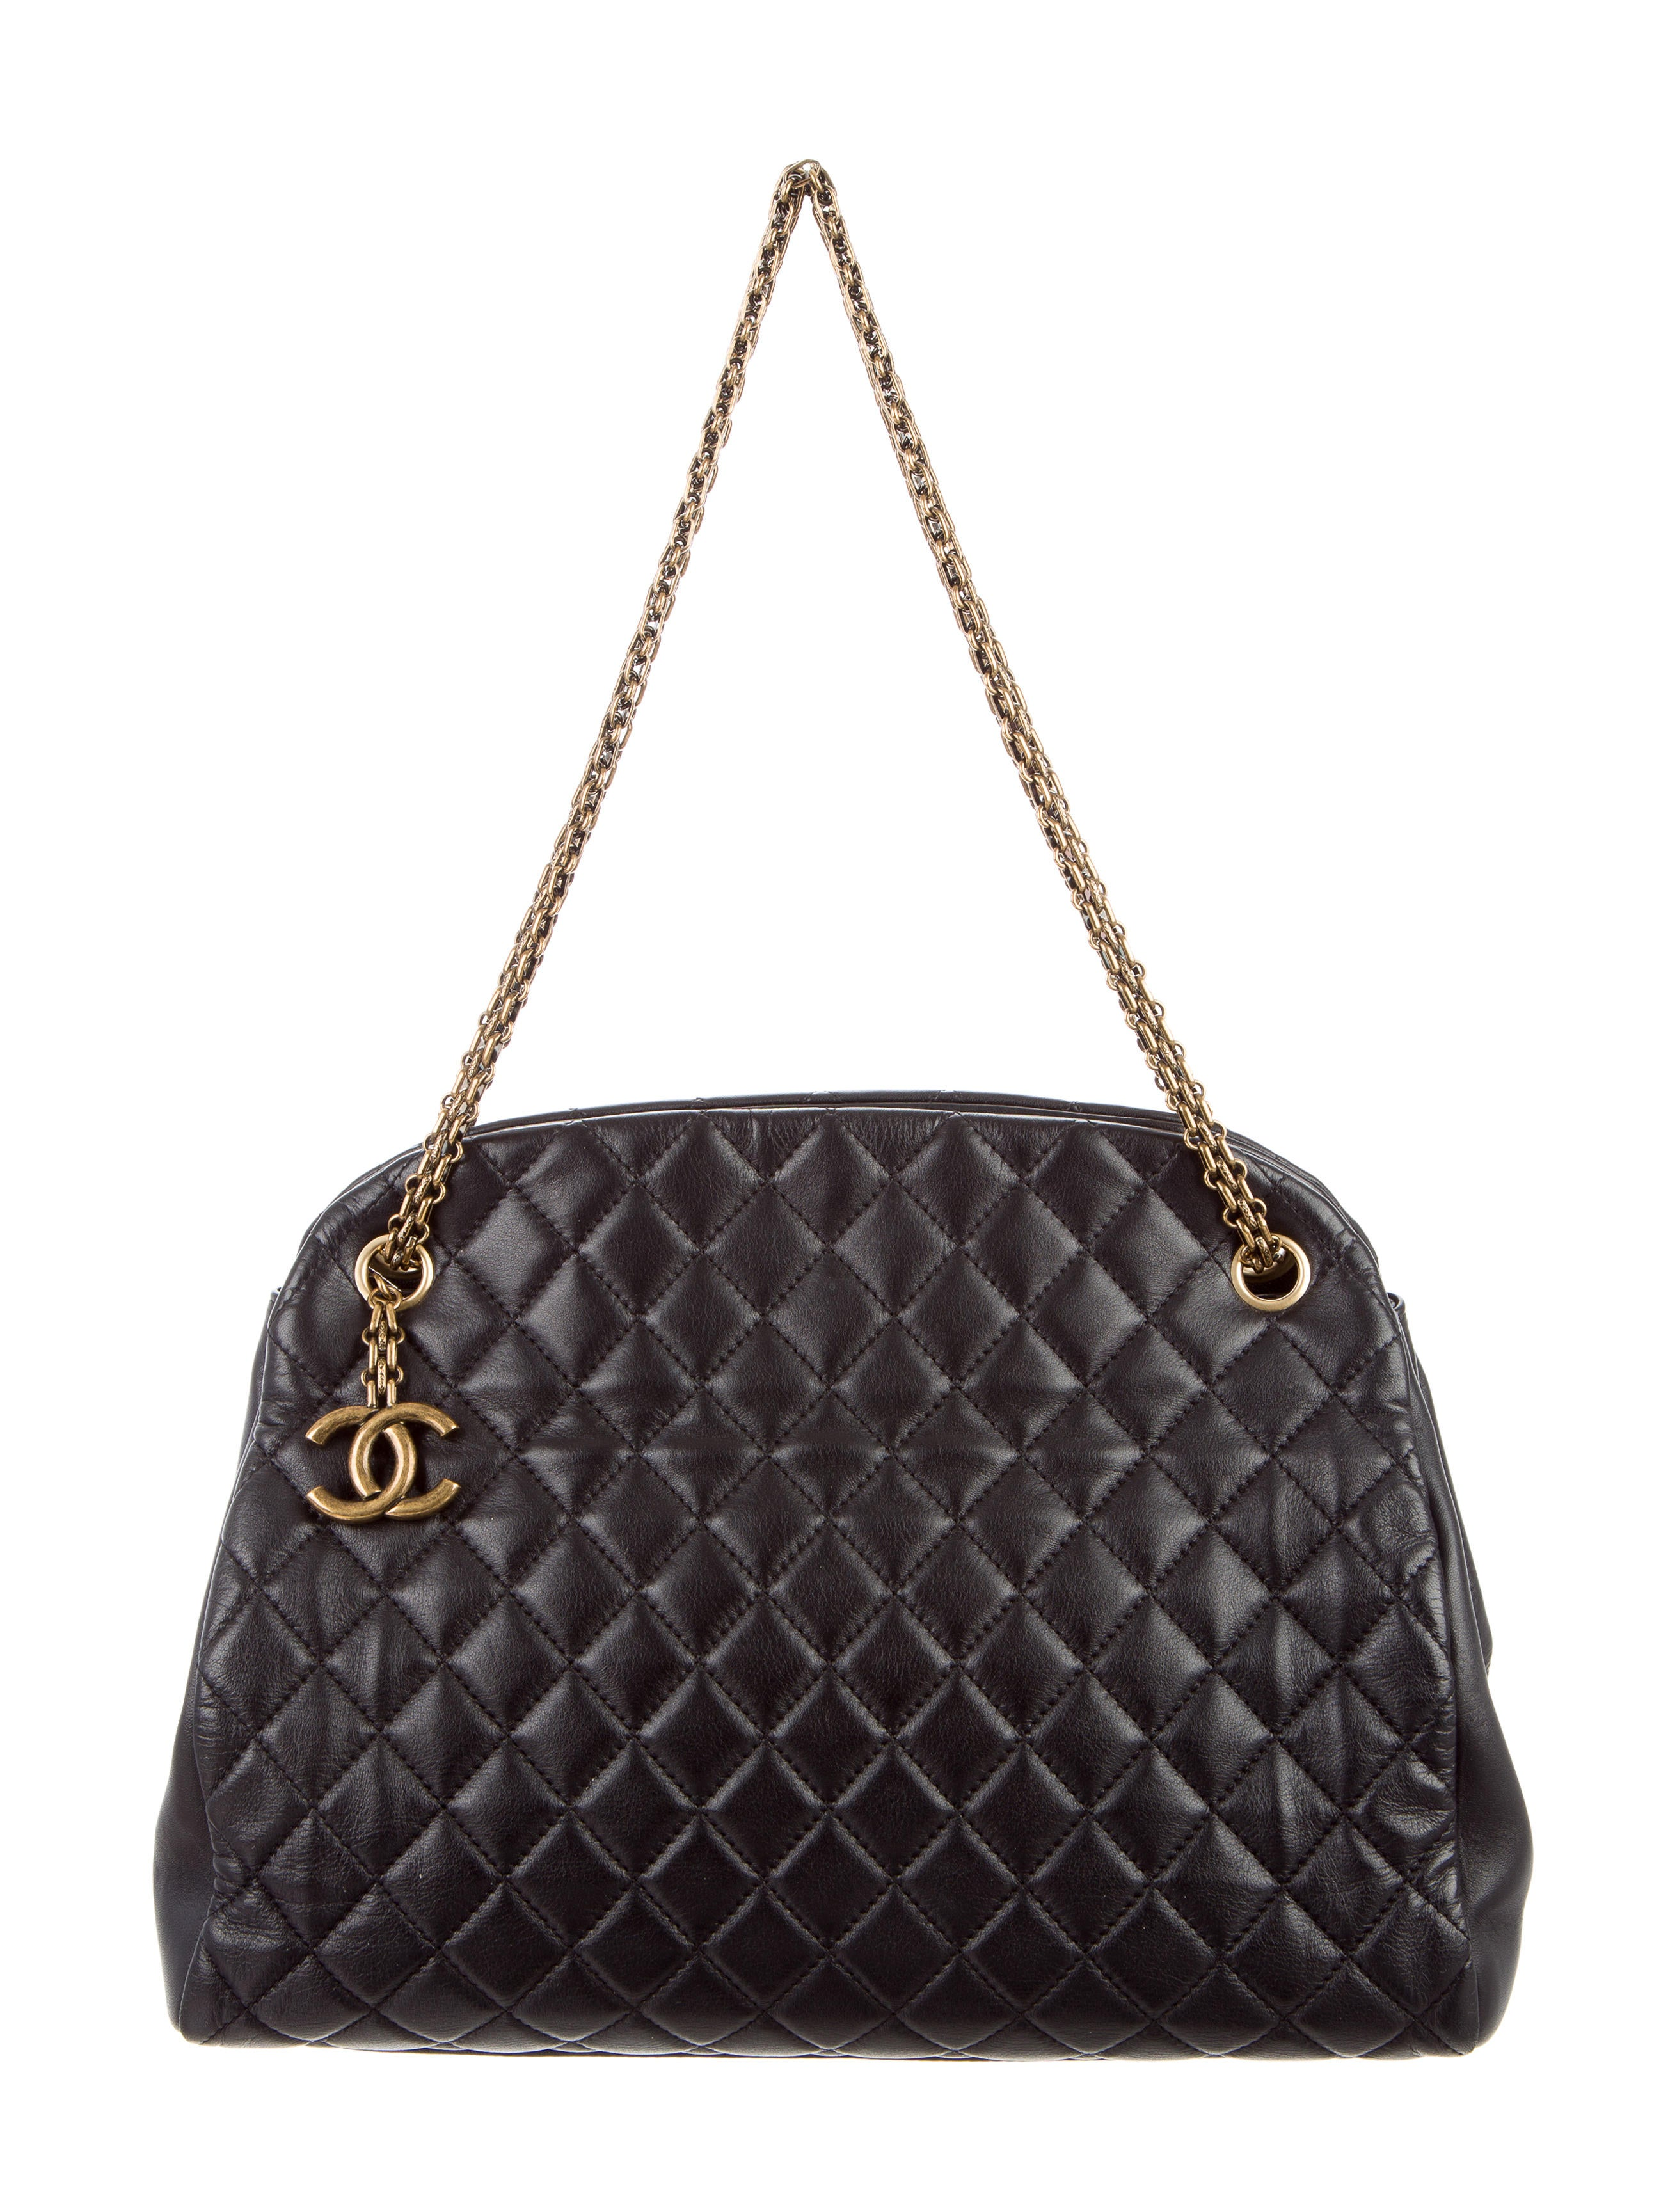 Chanel Large Grocery Shopping Basket W Tags: Chanel Just Mademoiselle Large Bowler Bag